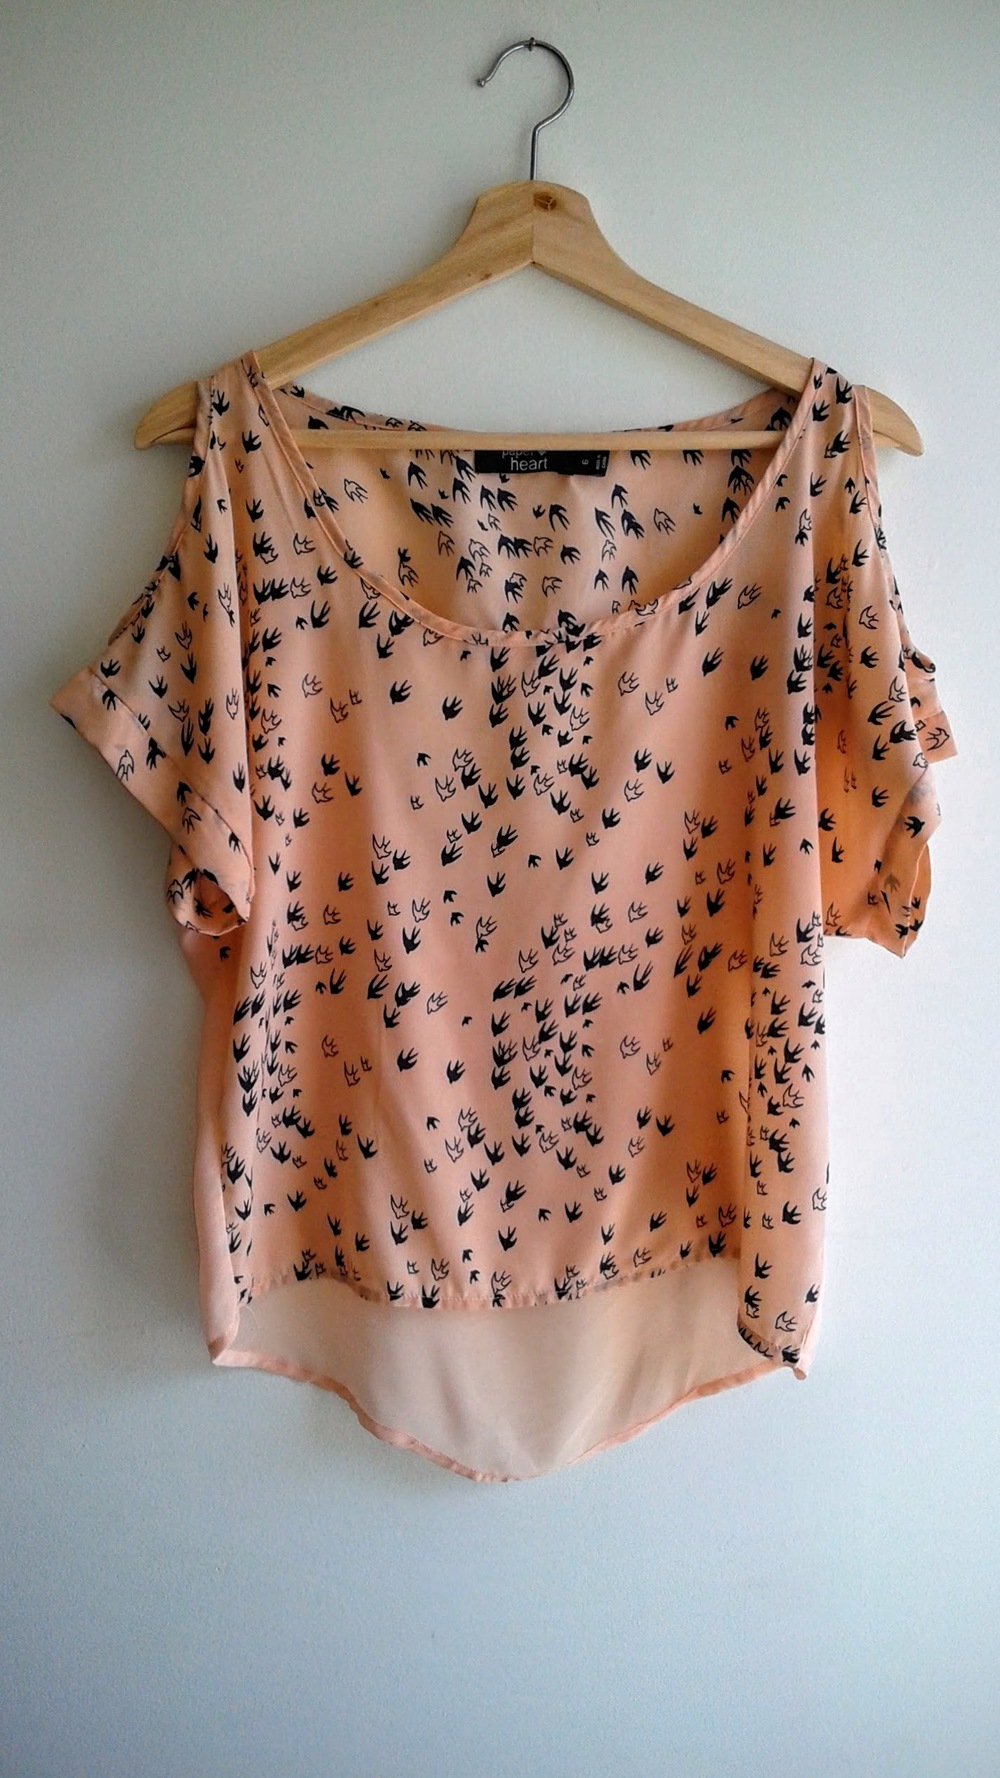 Paper Heart  top; Size 6, $16